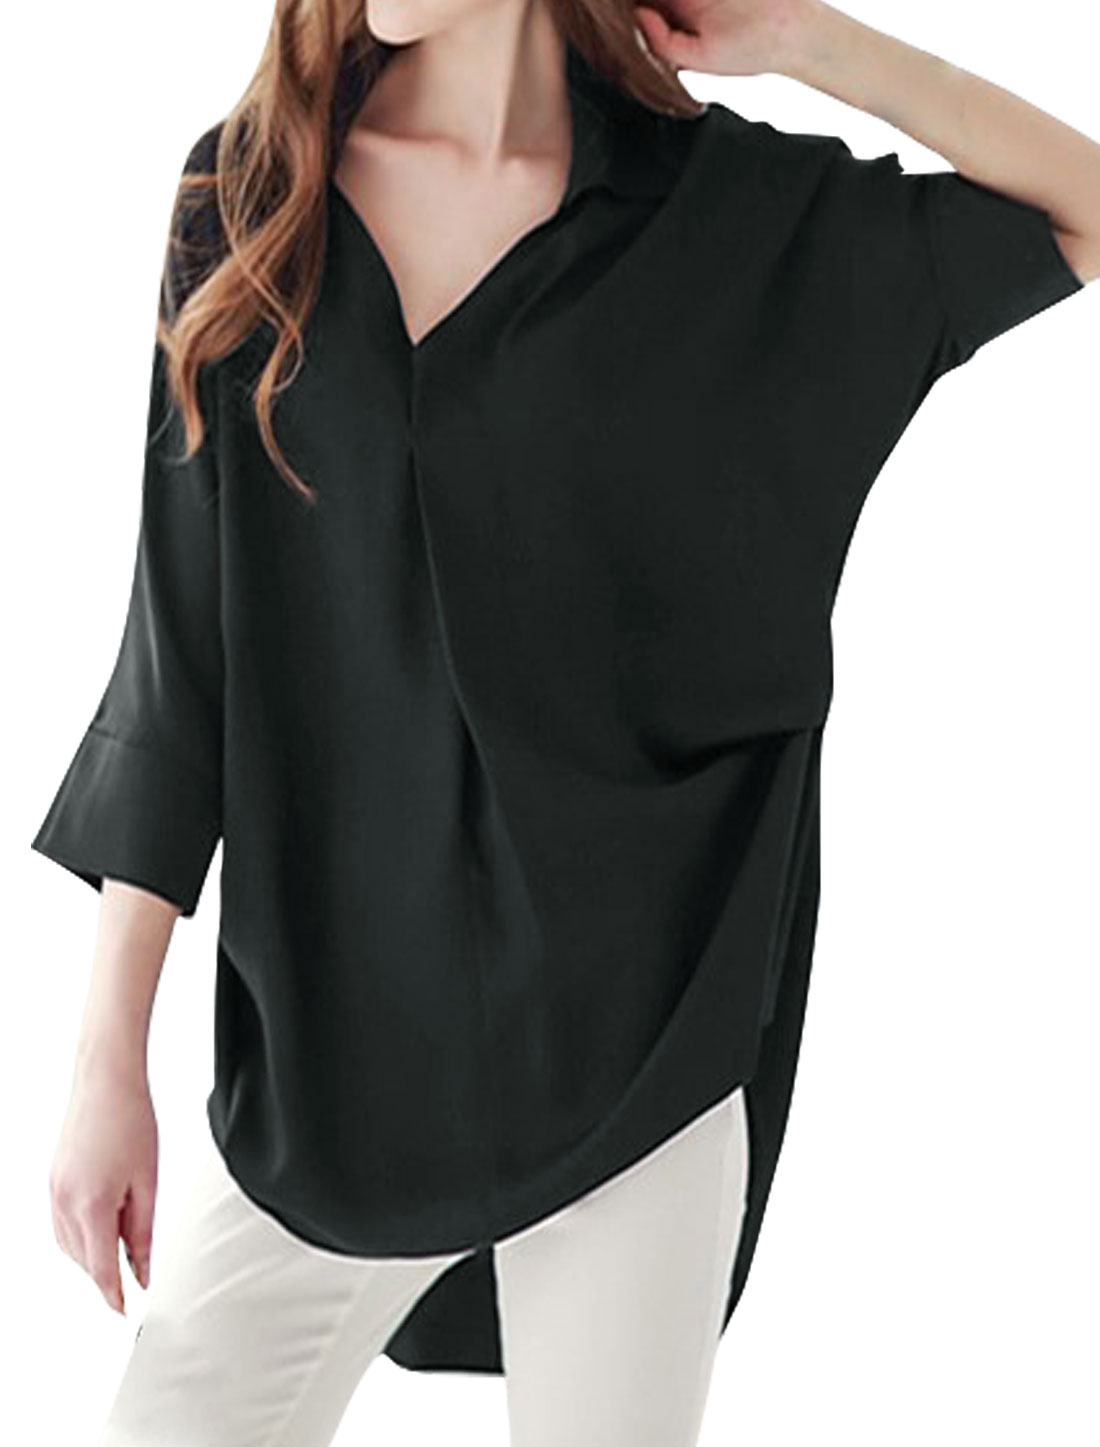 Women 3/4 Batwing Sleeves High Low Hem Loose Tunic Blouse Black S